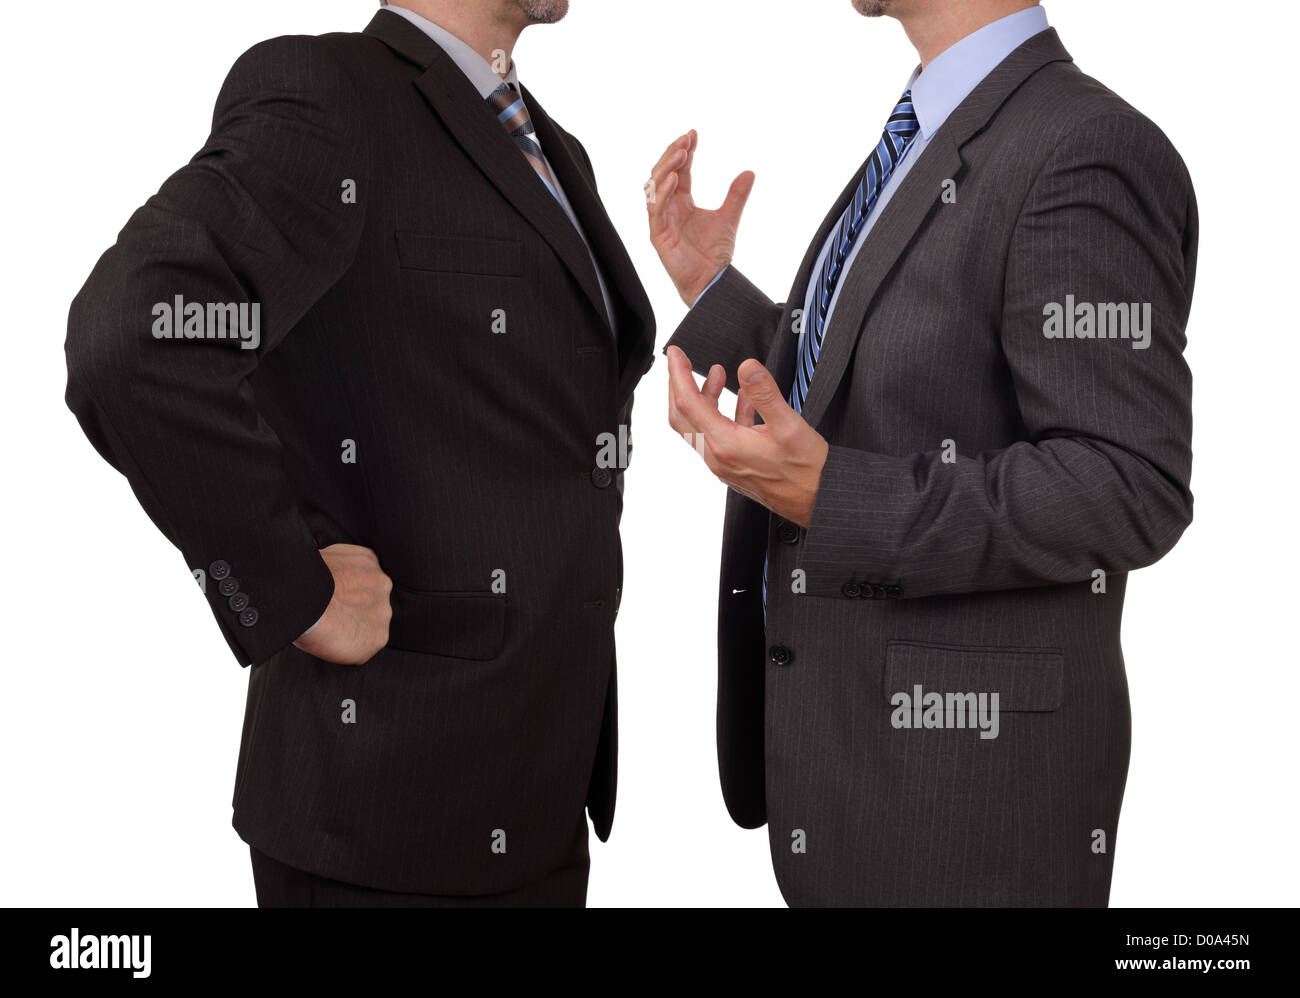 Confrontation at work - Stock Image